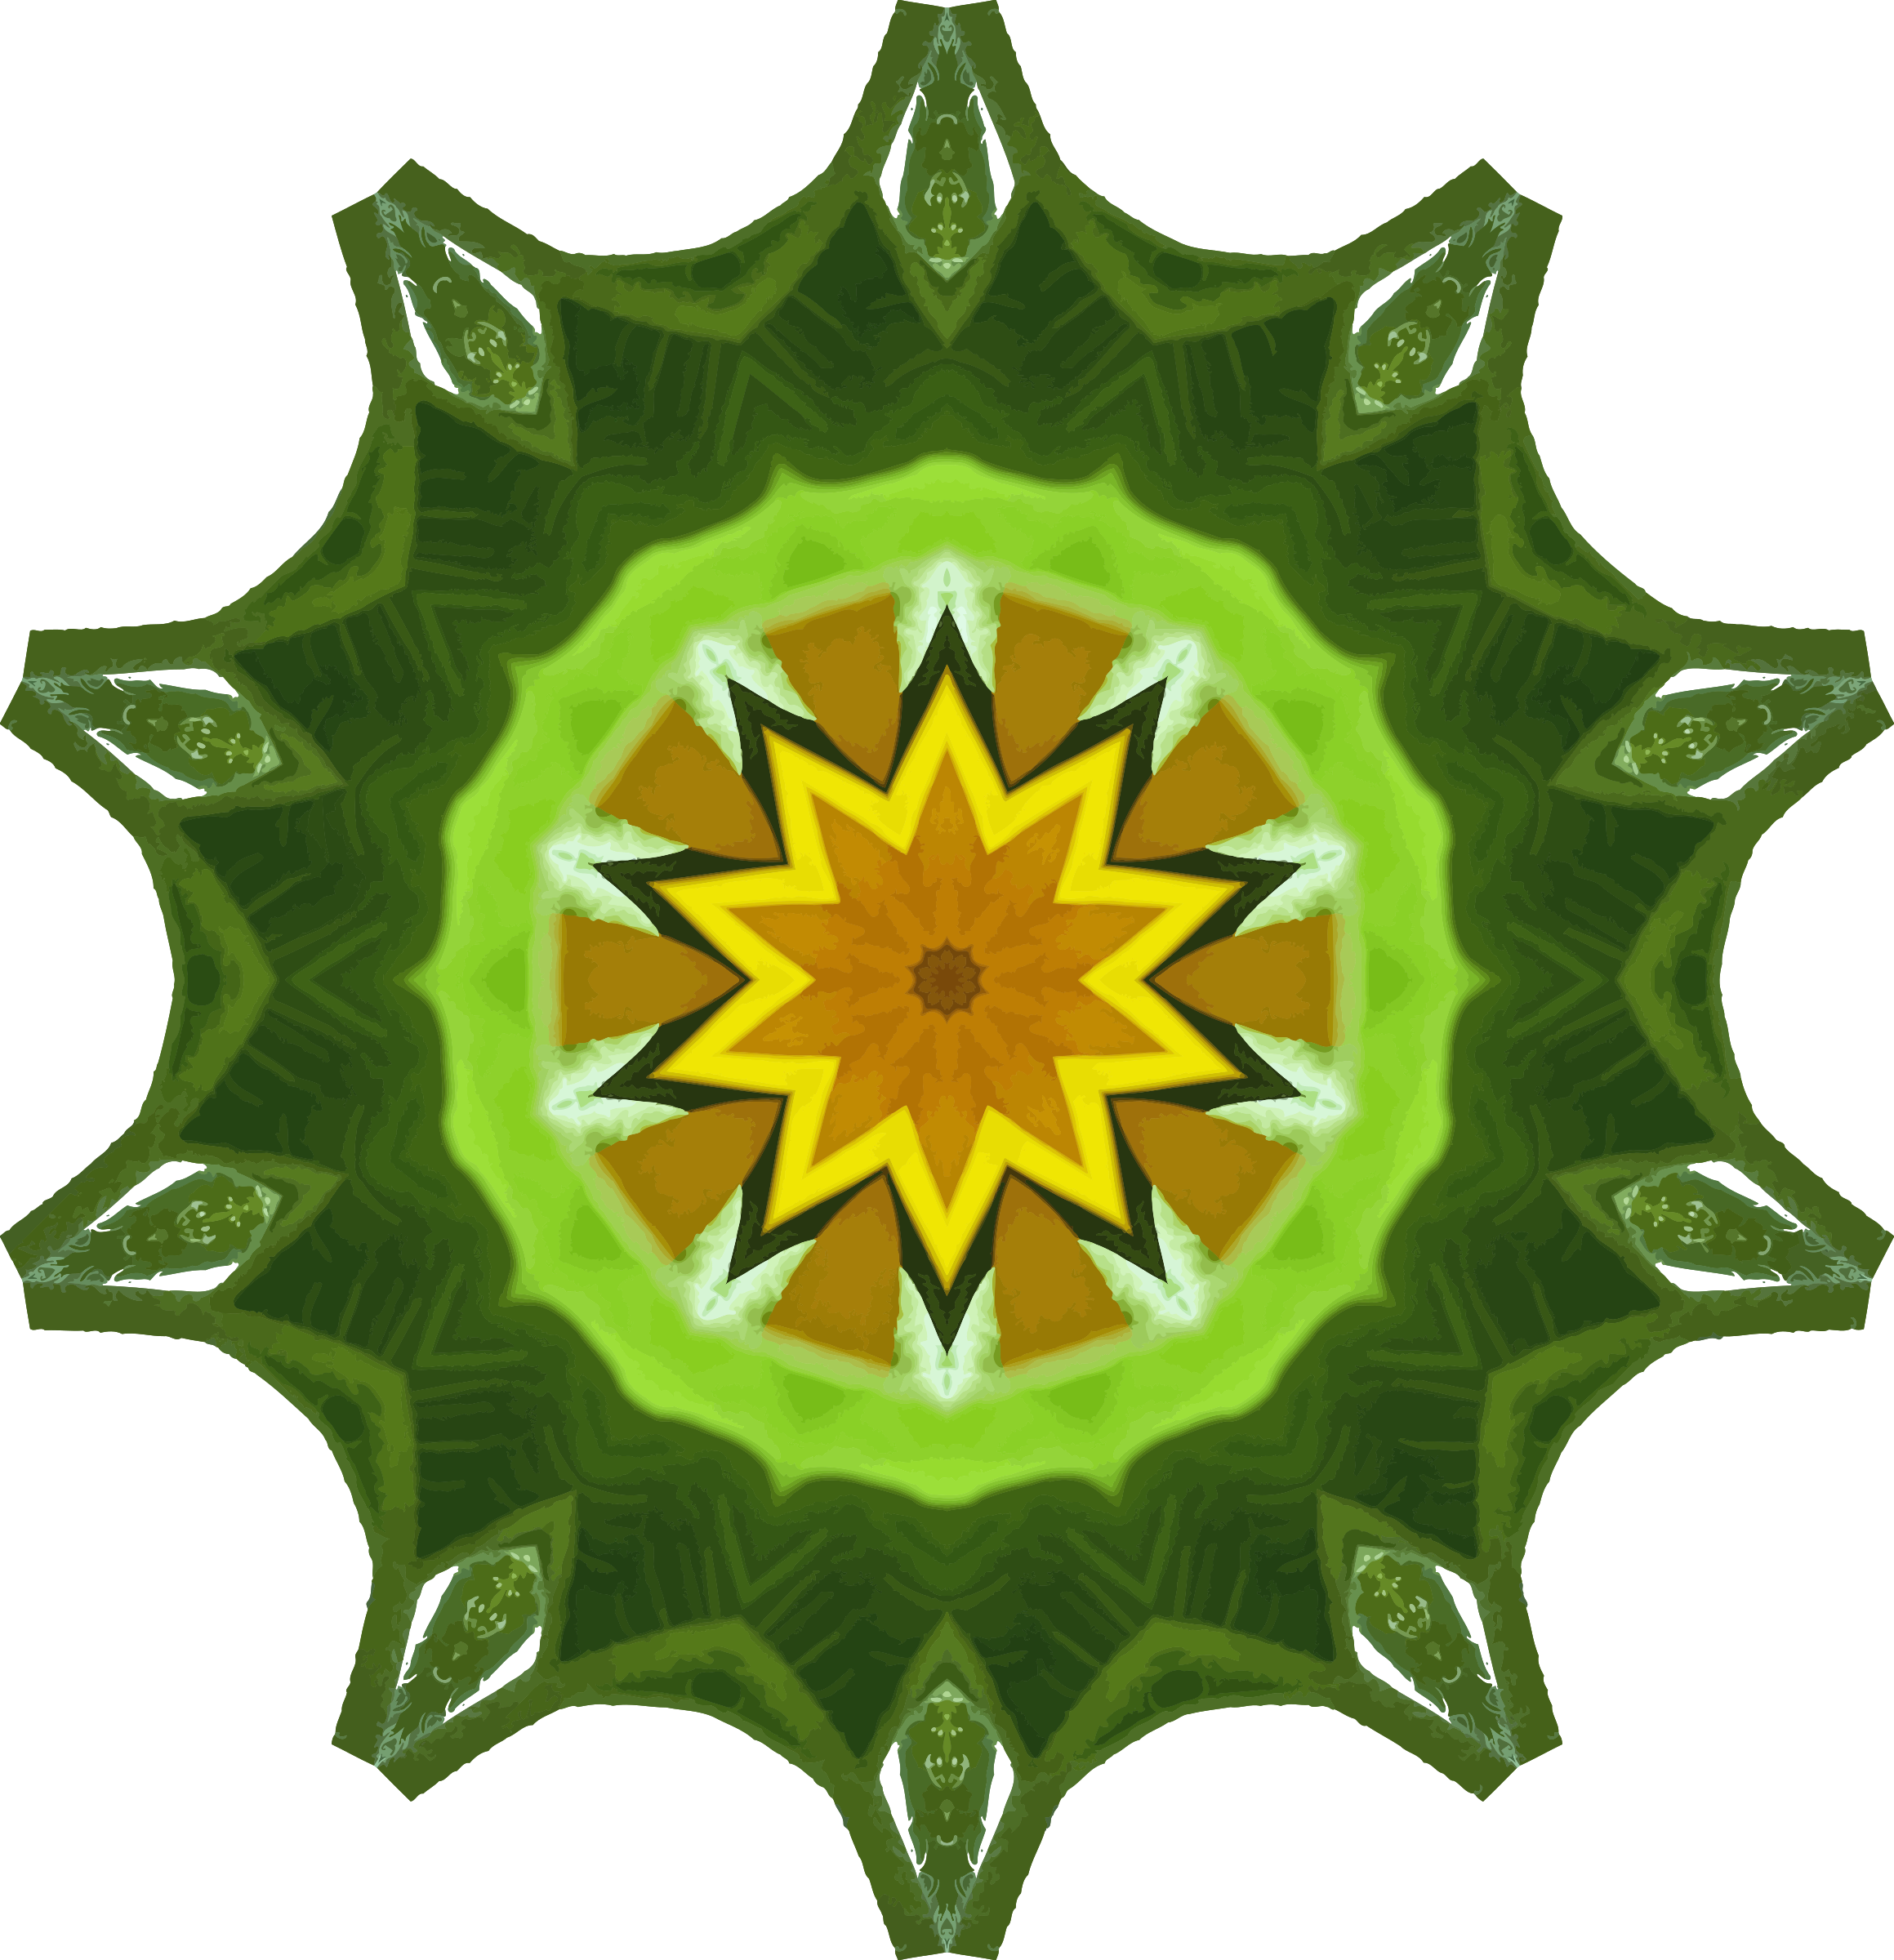 Sunflower kaleidoscope 9 by Firkin